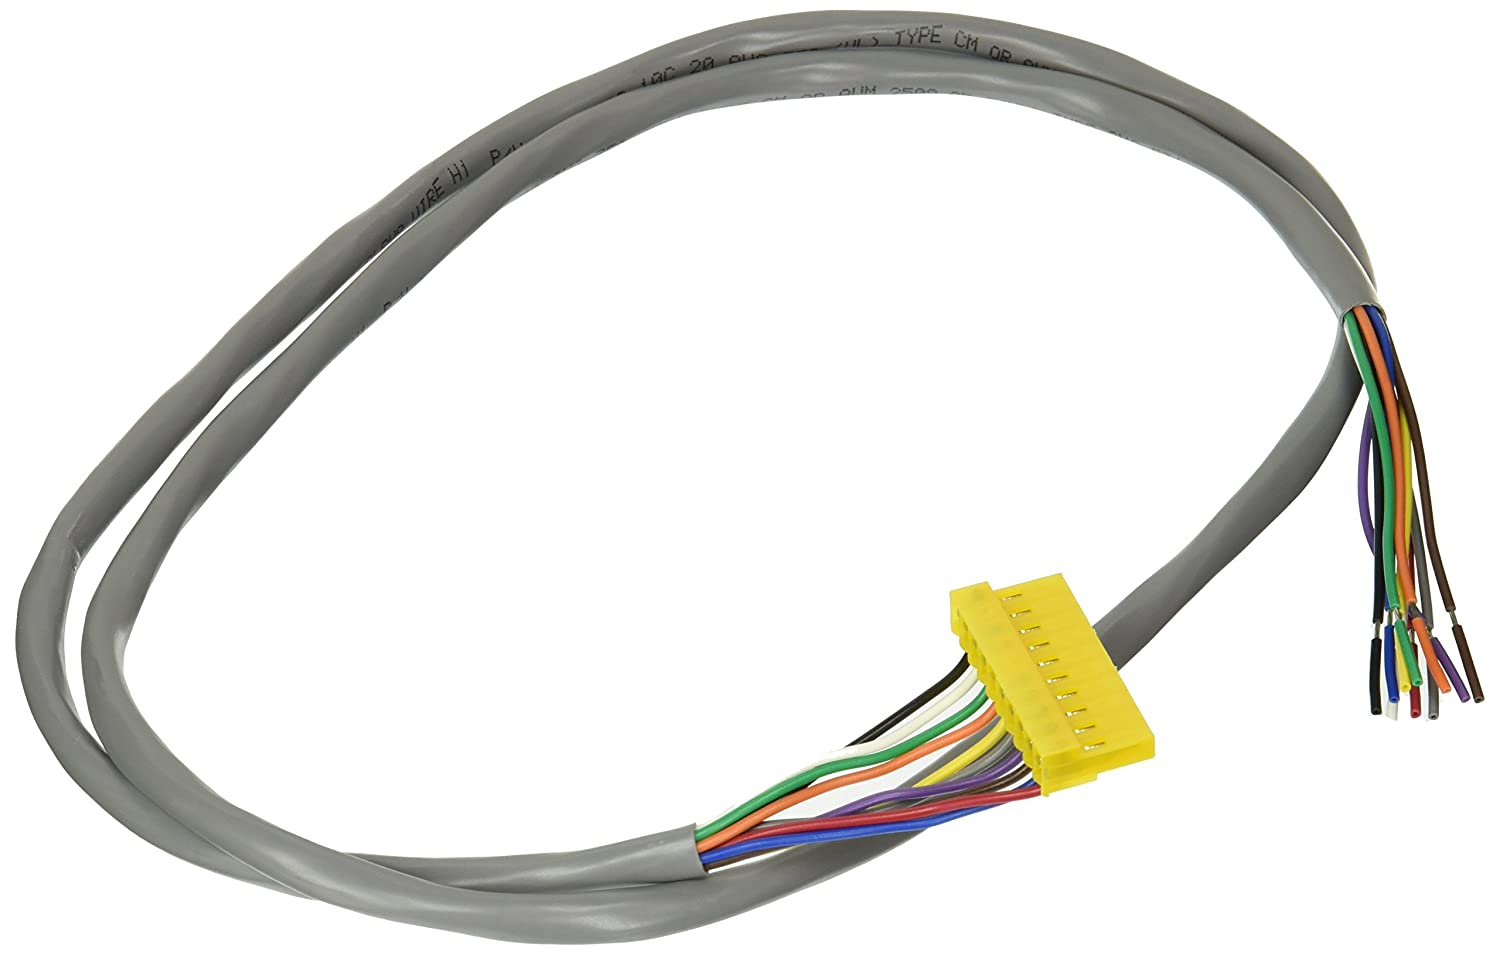 Von Duprin 112018 Chexit Wiring Assembly Amazon.com Industrial u0026 Scientific  sc 1 st  Amazon.com : von duprin chexit wiring - yogabreezes.com